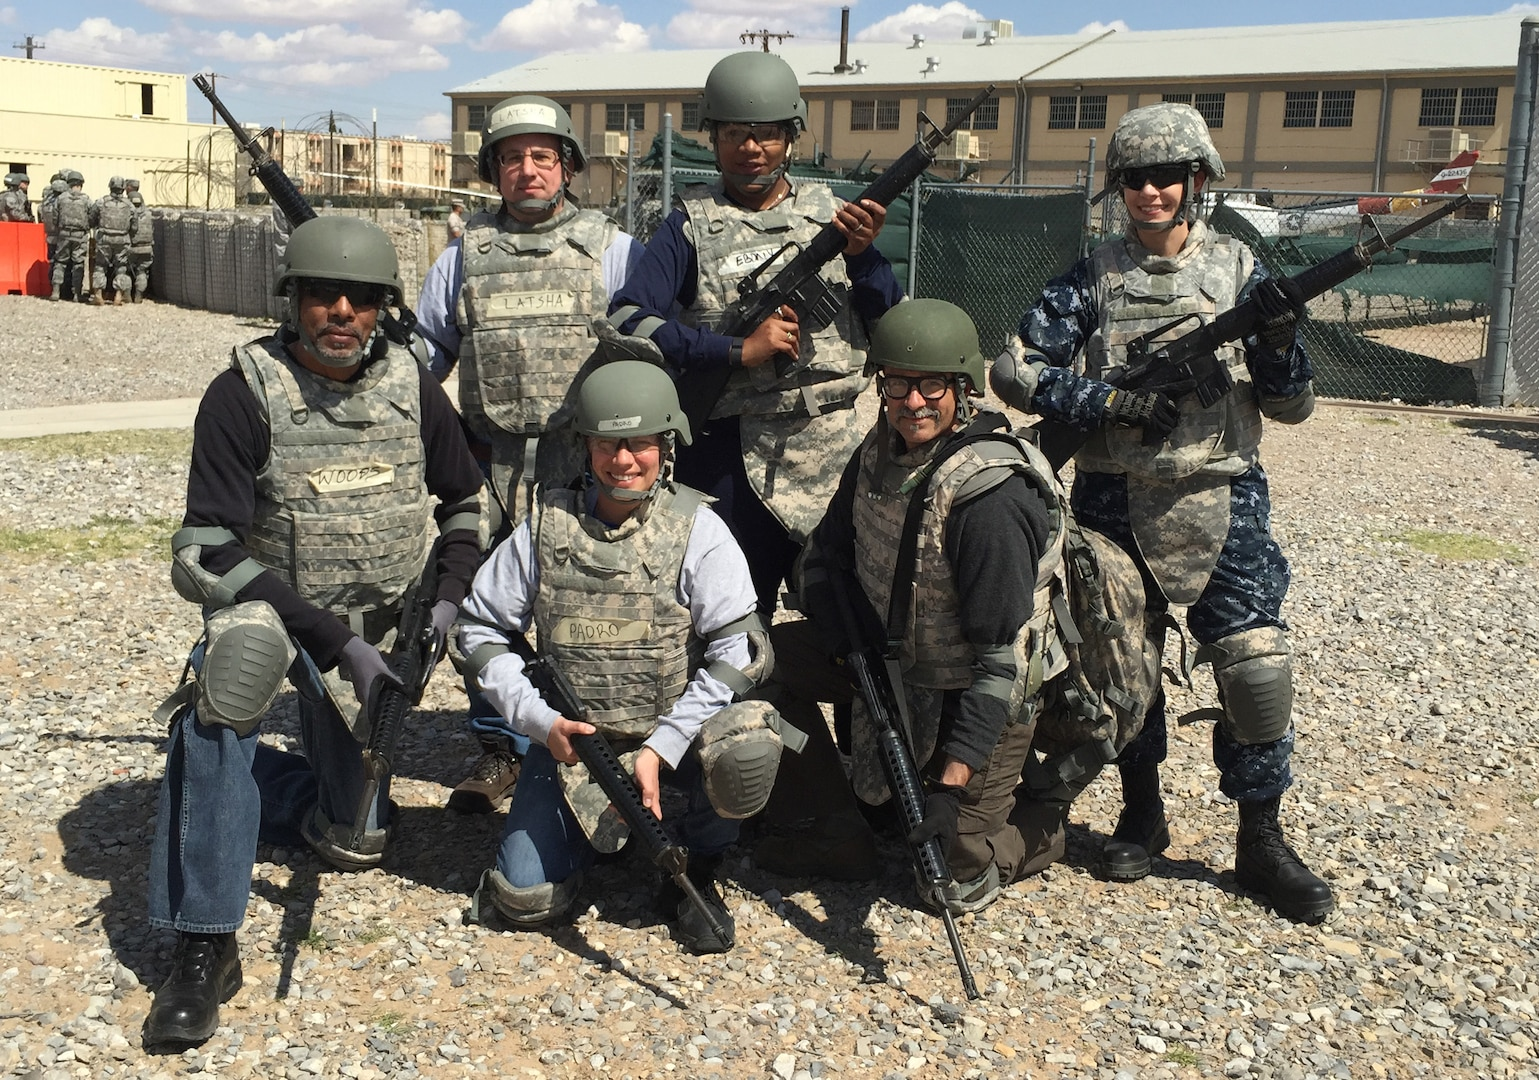 Navy Lt. j.g. Amy Aguirre (right), participated in Warrior Task Training with other Defense Contract Management Agency personnel at Operational Contract Support Joint Exercise 2015 held at Fort Bliss, Texas. Training consisted of convoy simulation, first aide, Humvee rollover training, room clearance and weapons qualification.